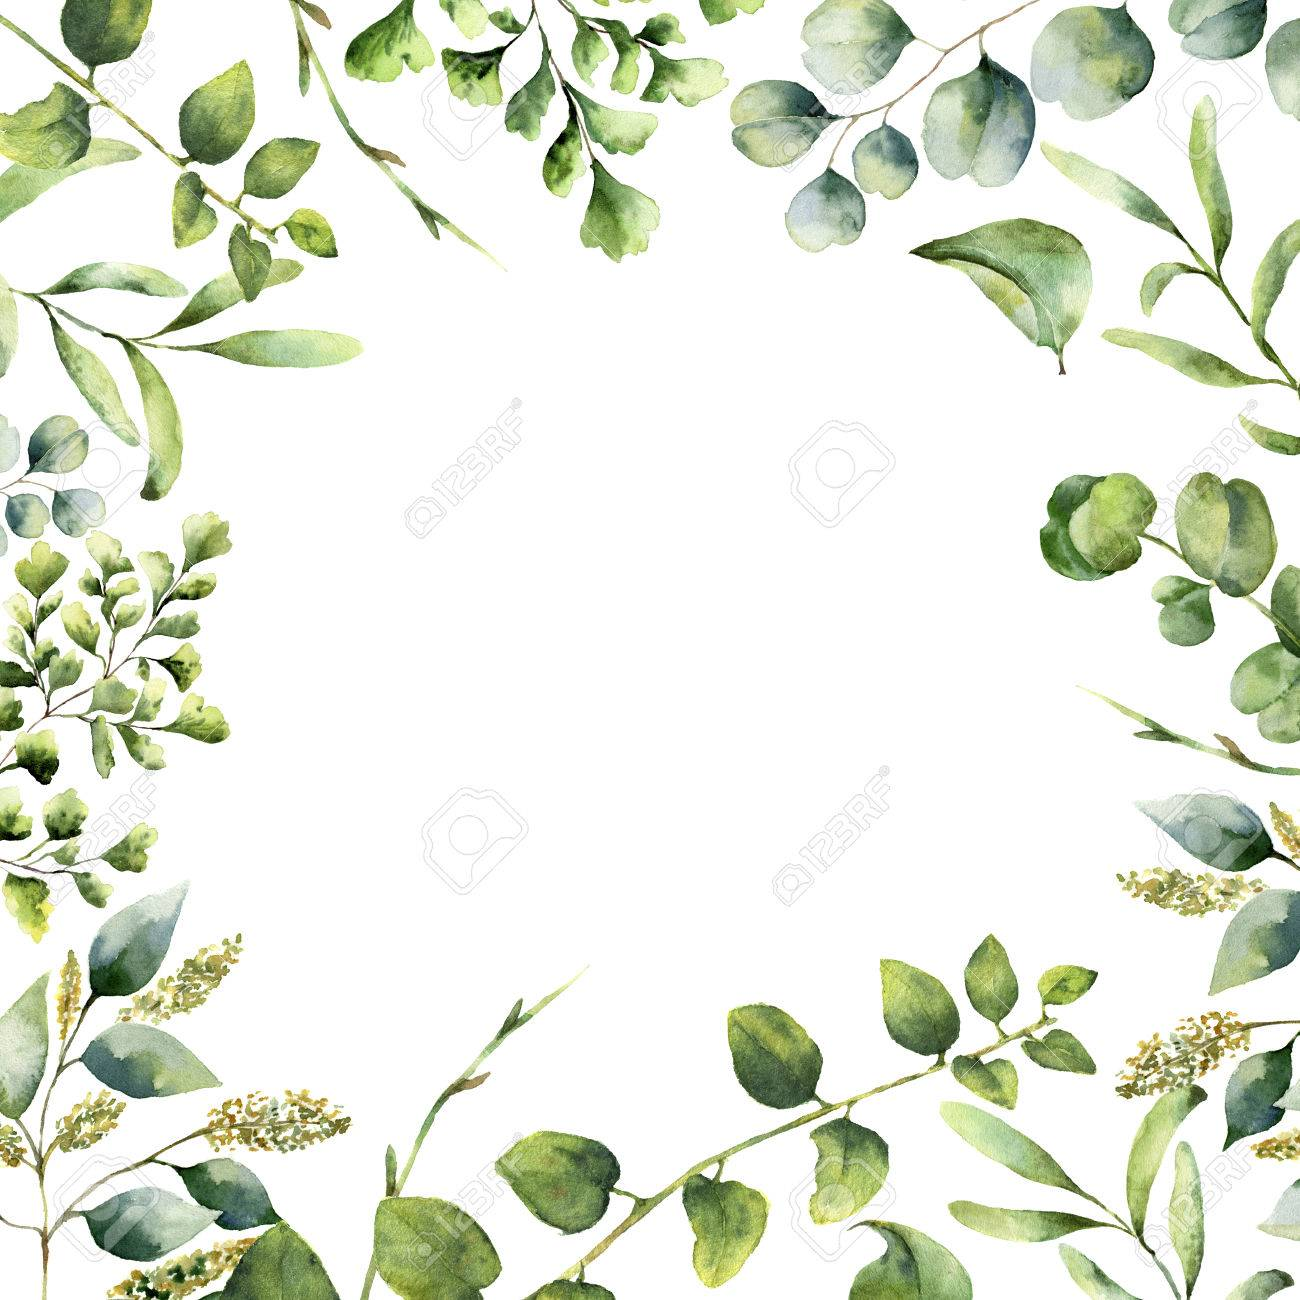 Watercolor floral frame. Hand painted plant card with eucalyptus, fern and spring greenery branches isolated on white background. Print for design or background. - 73393664